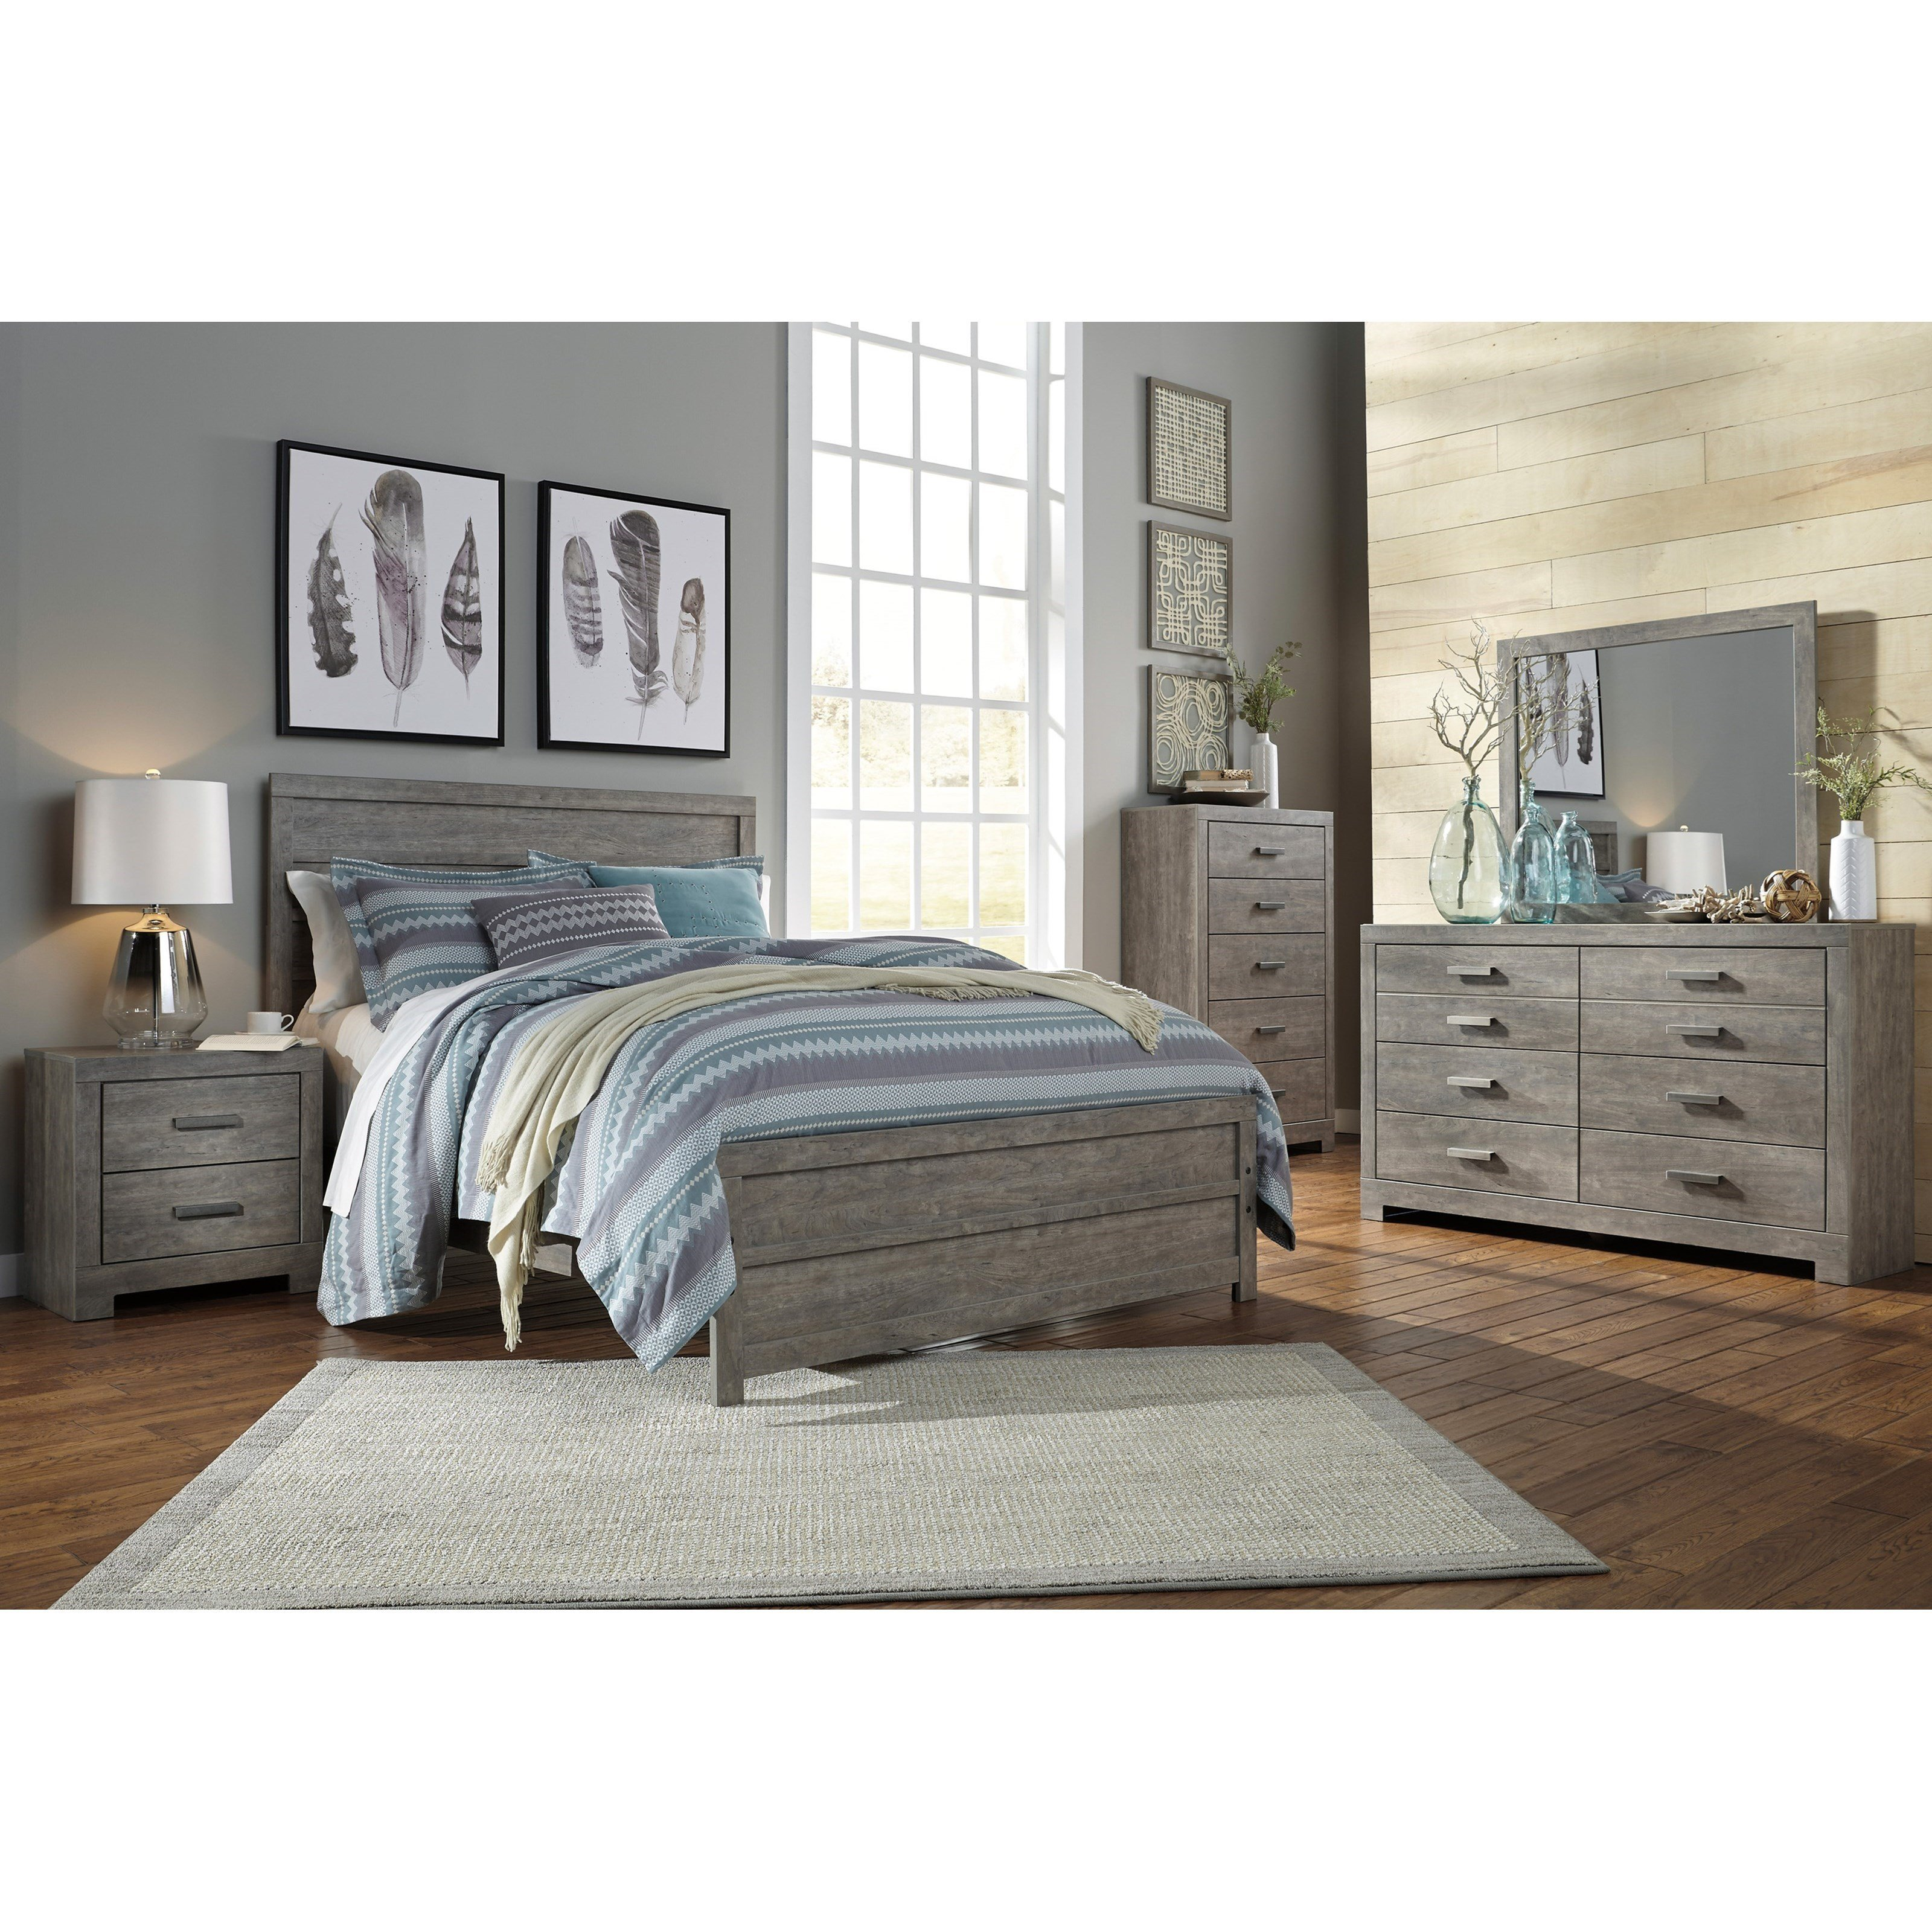 Best Signature Design By Ashley Culverbach Queen Bedroom Group With Pictures